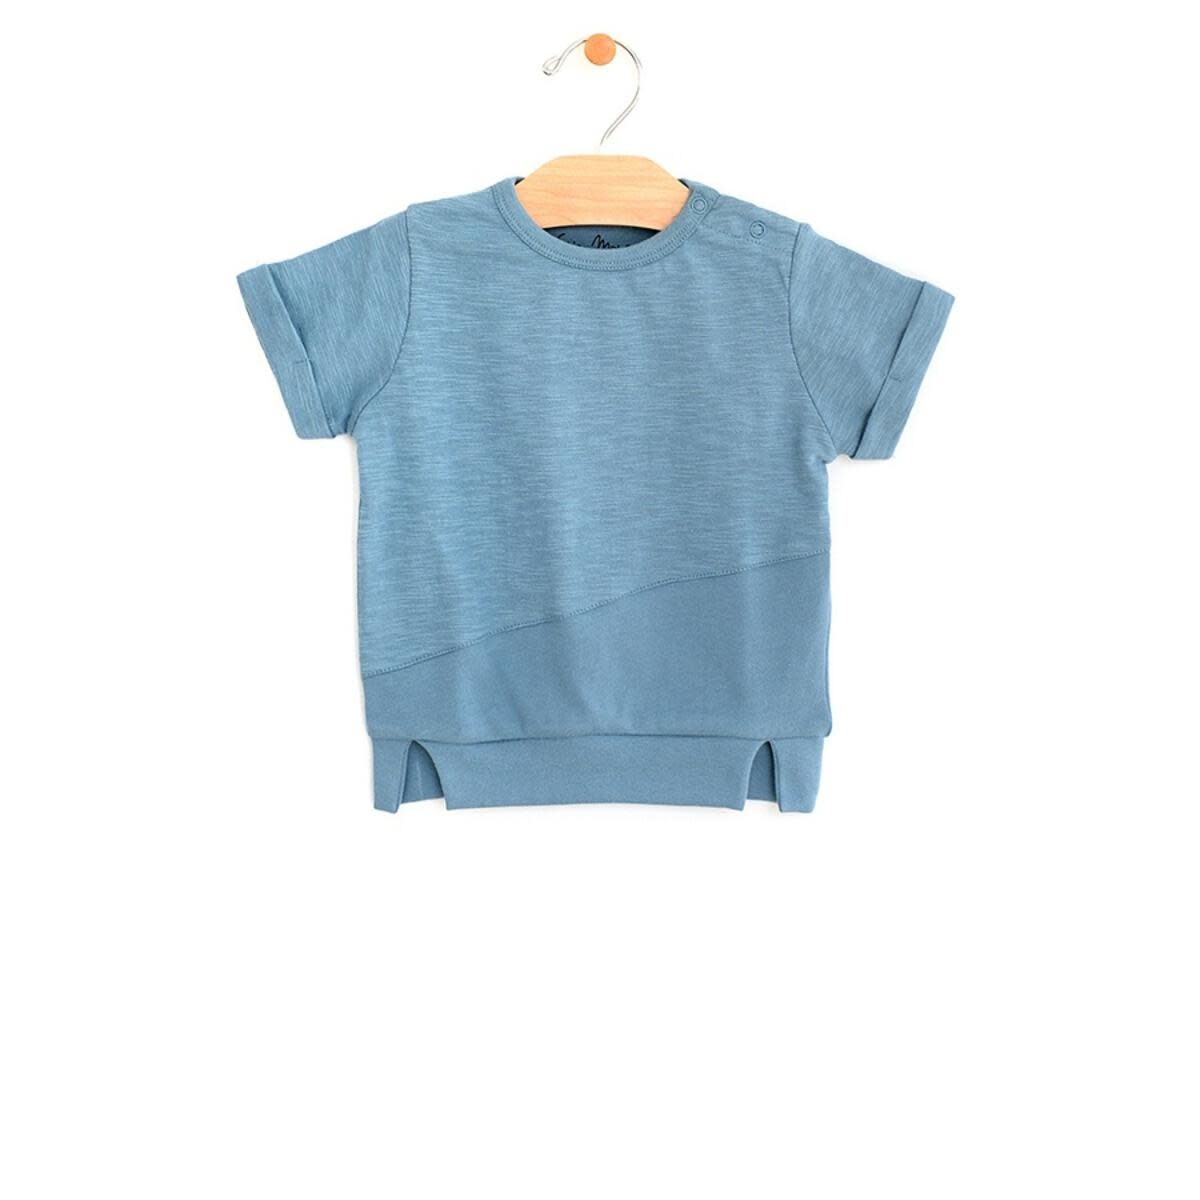 City Mouse Mixed Media Pull Over - Ocean